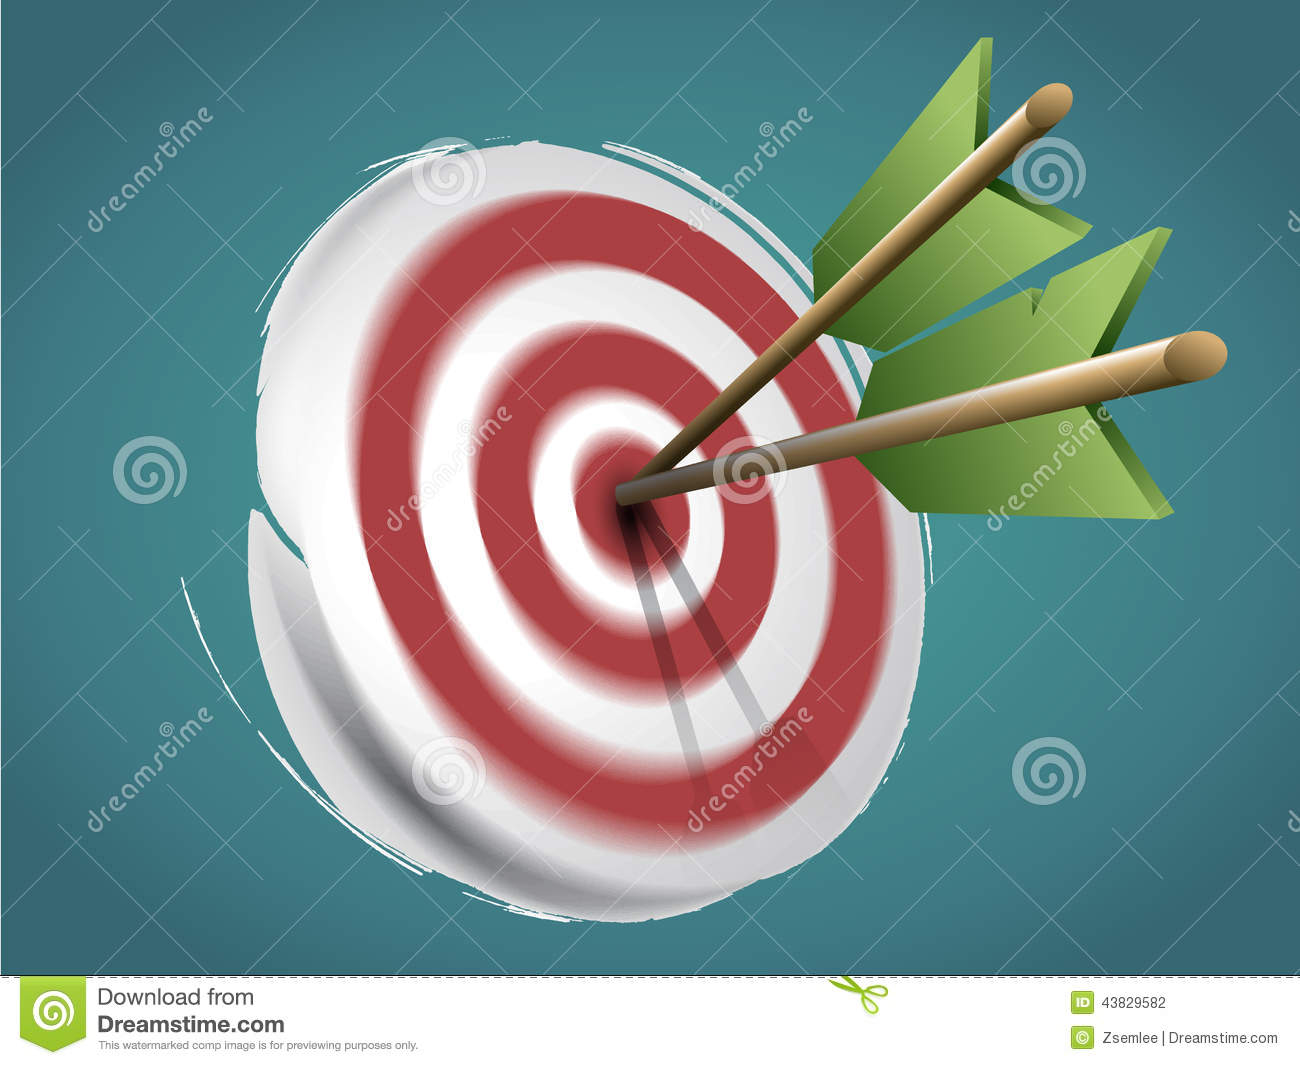 Target with Arrows and Doodles